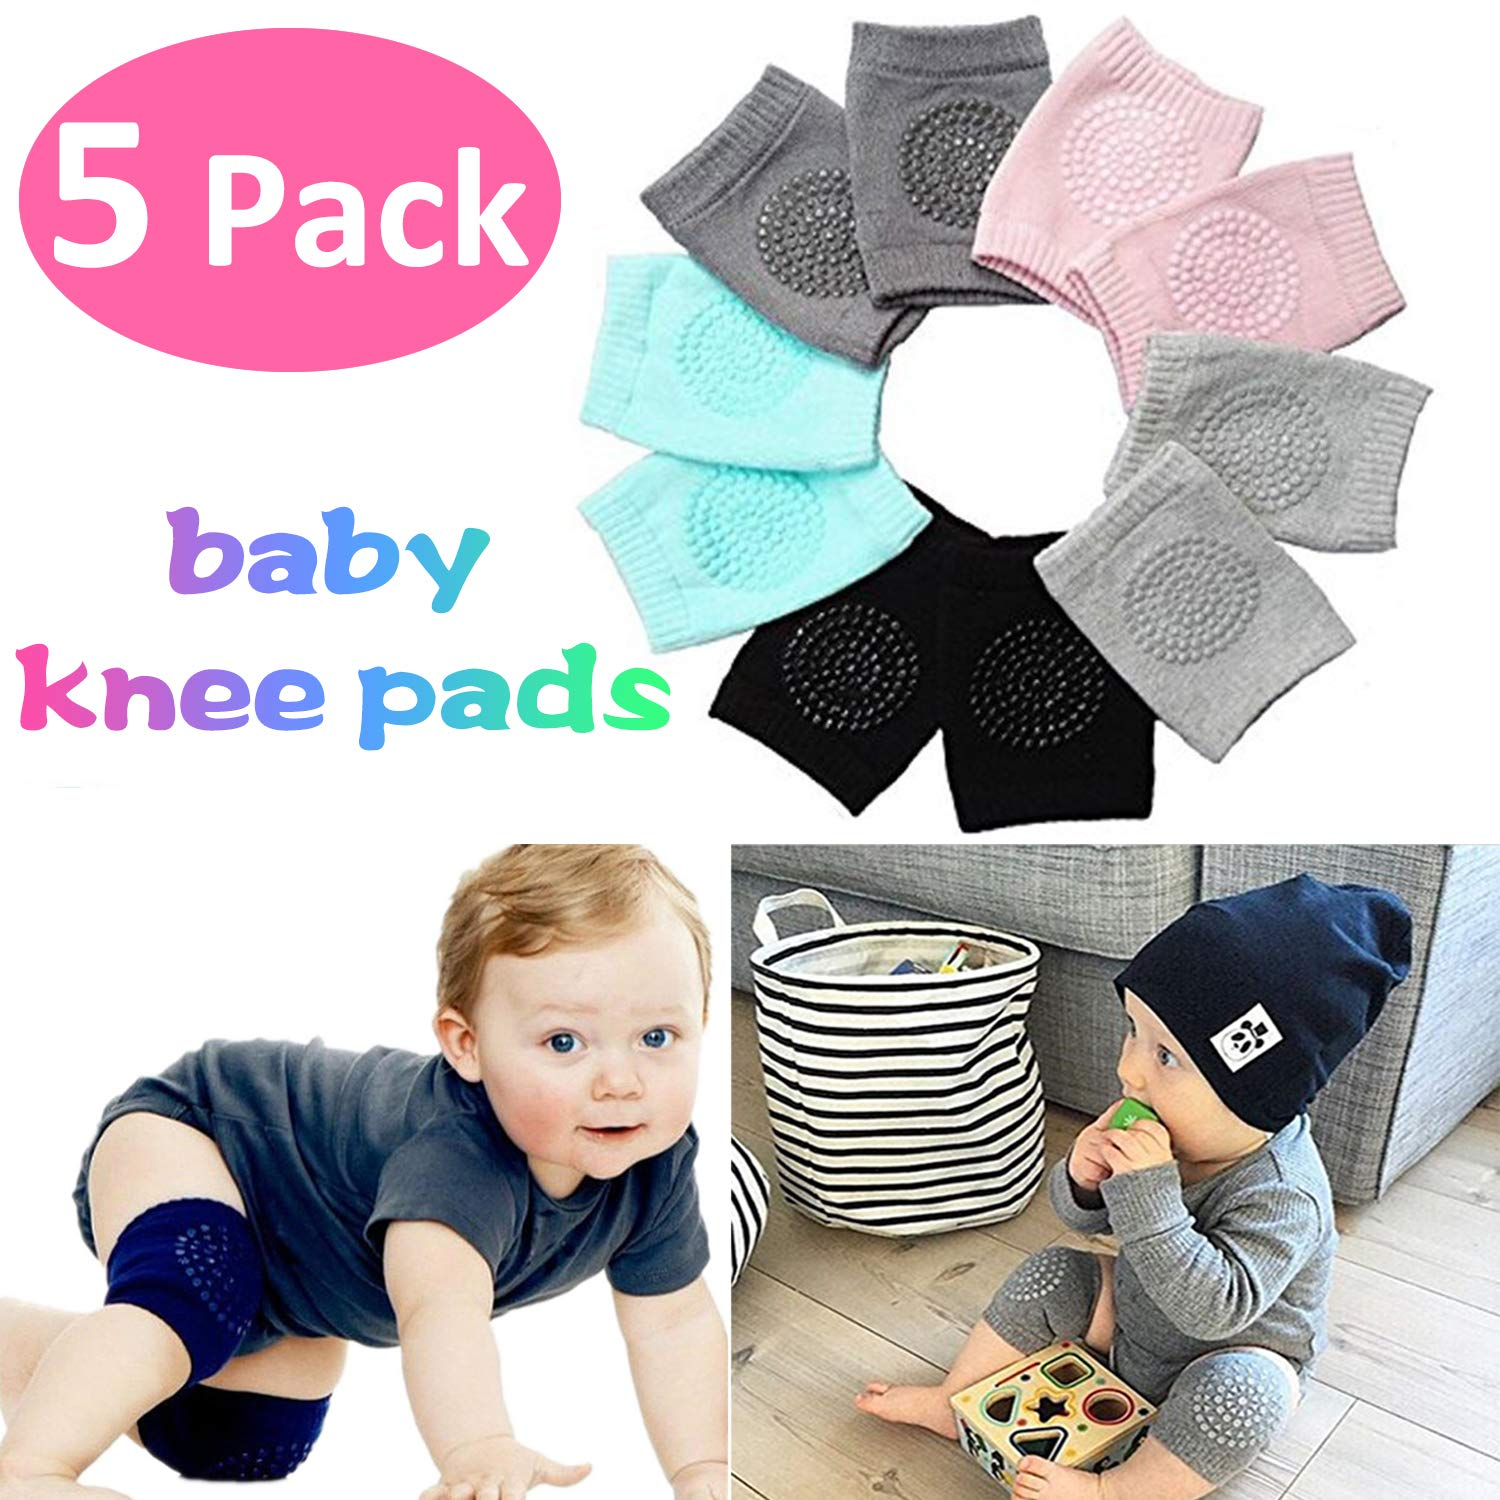 Baby Crawling Anti-Slip Knee for Boys Girl 2 Month - 3 Year Old Baby Unisex Baby Toddlers Kneepads Baby Knee Pads Toddlers Kneepads Adjustable Knee Elbow Pads Crawling 5 Pairs Qiekenao